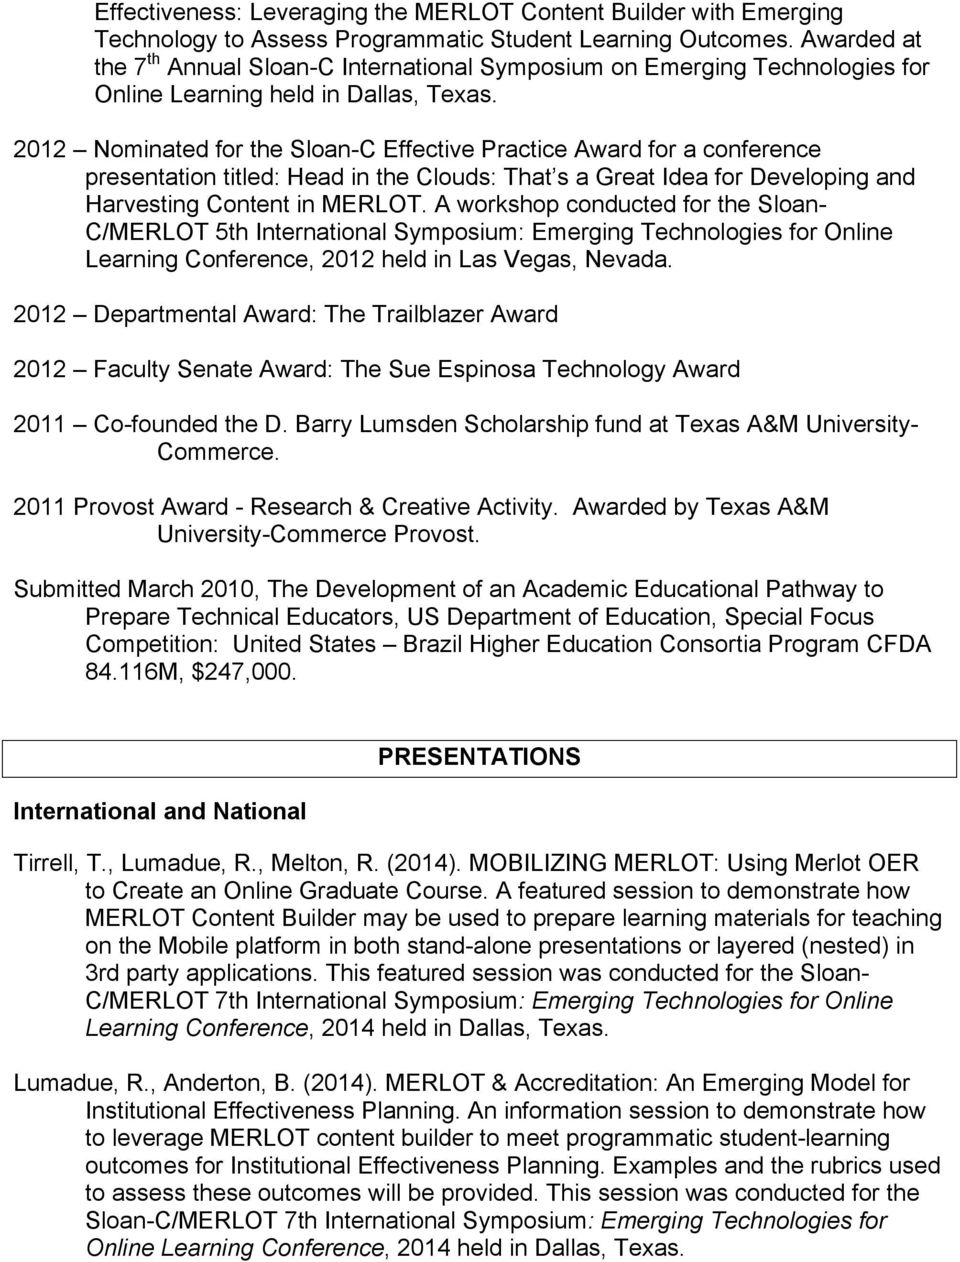 2012 Nominated for the Sloan-C Effective Practice Award for a conference presentation titled: Head in the Clouds: That s a Great Idea for Developing and Harvesting Content in MERLOT.